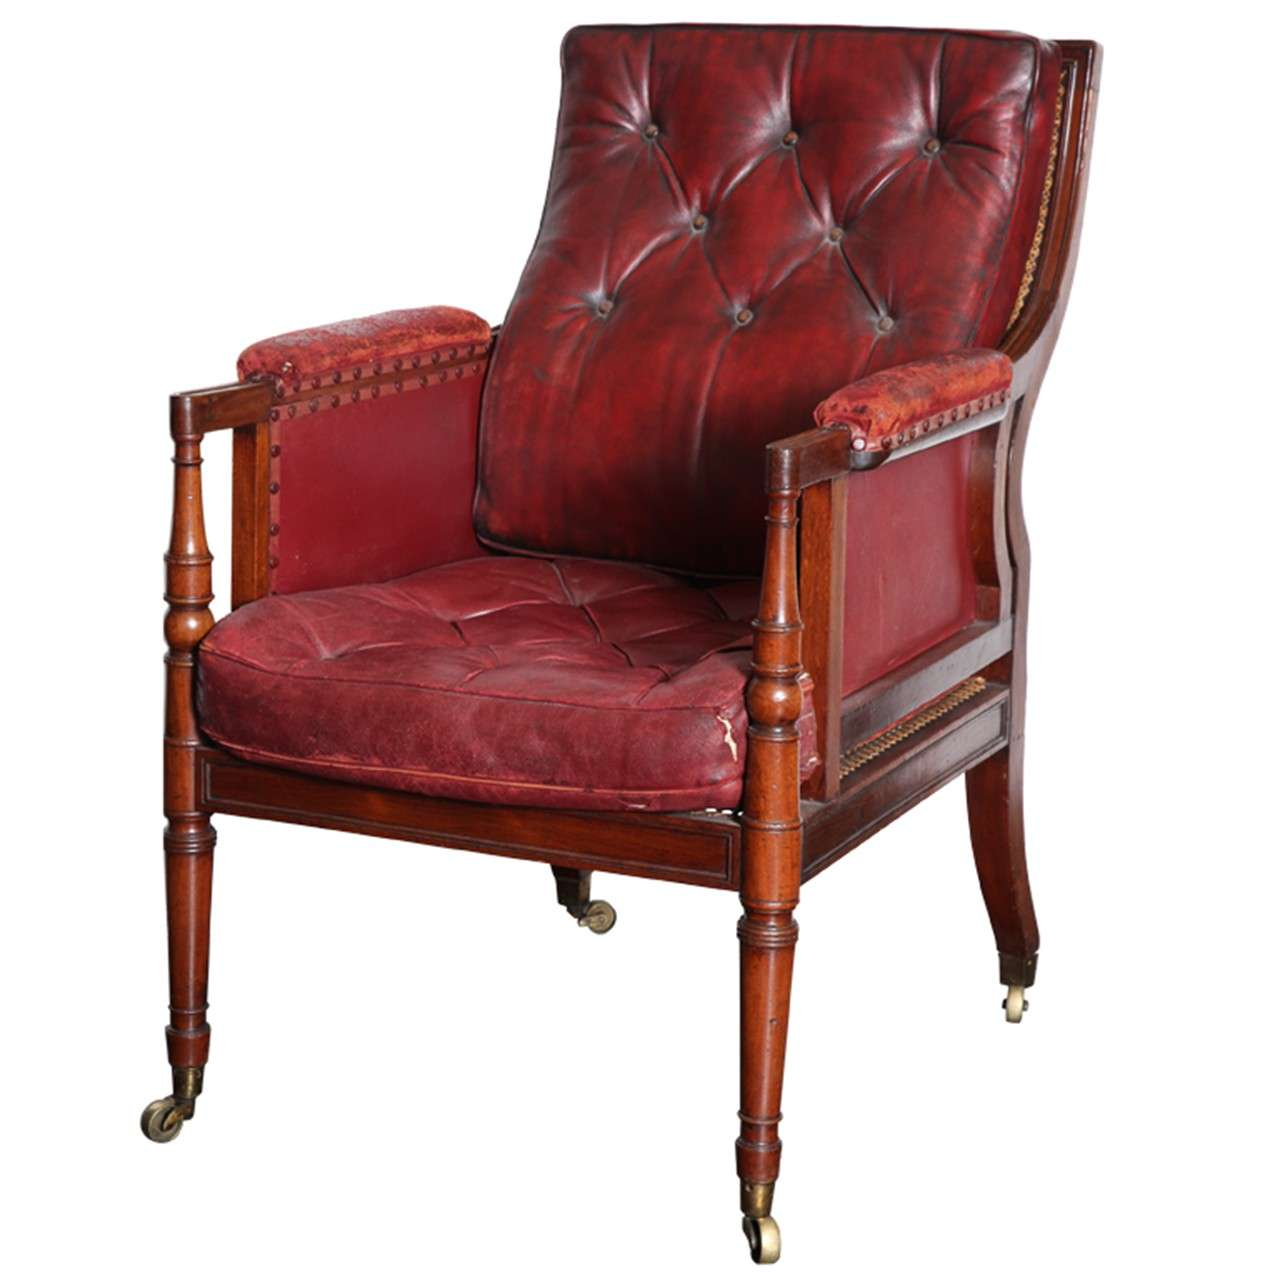 arm chairs for sale power chair lift english regency library armchair at 1stdibs